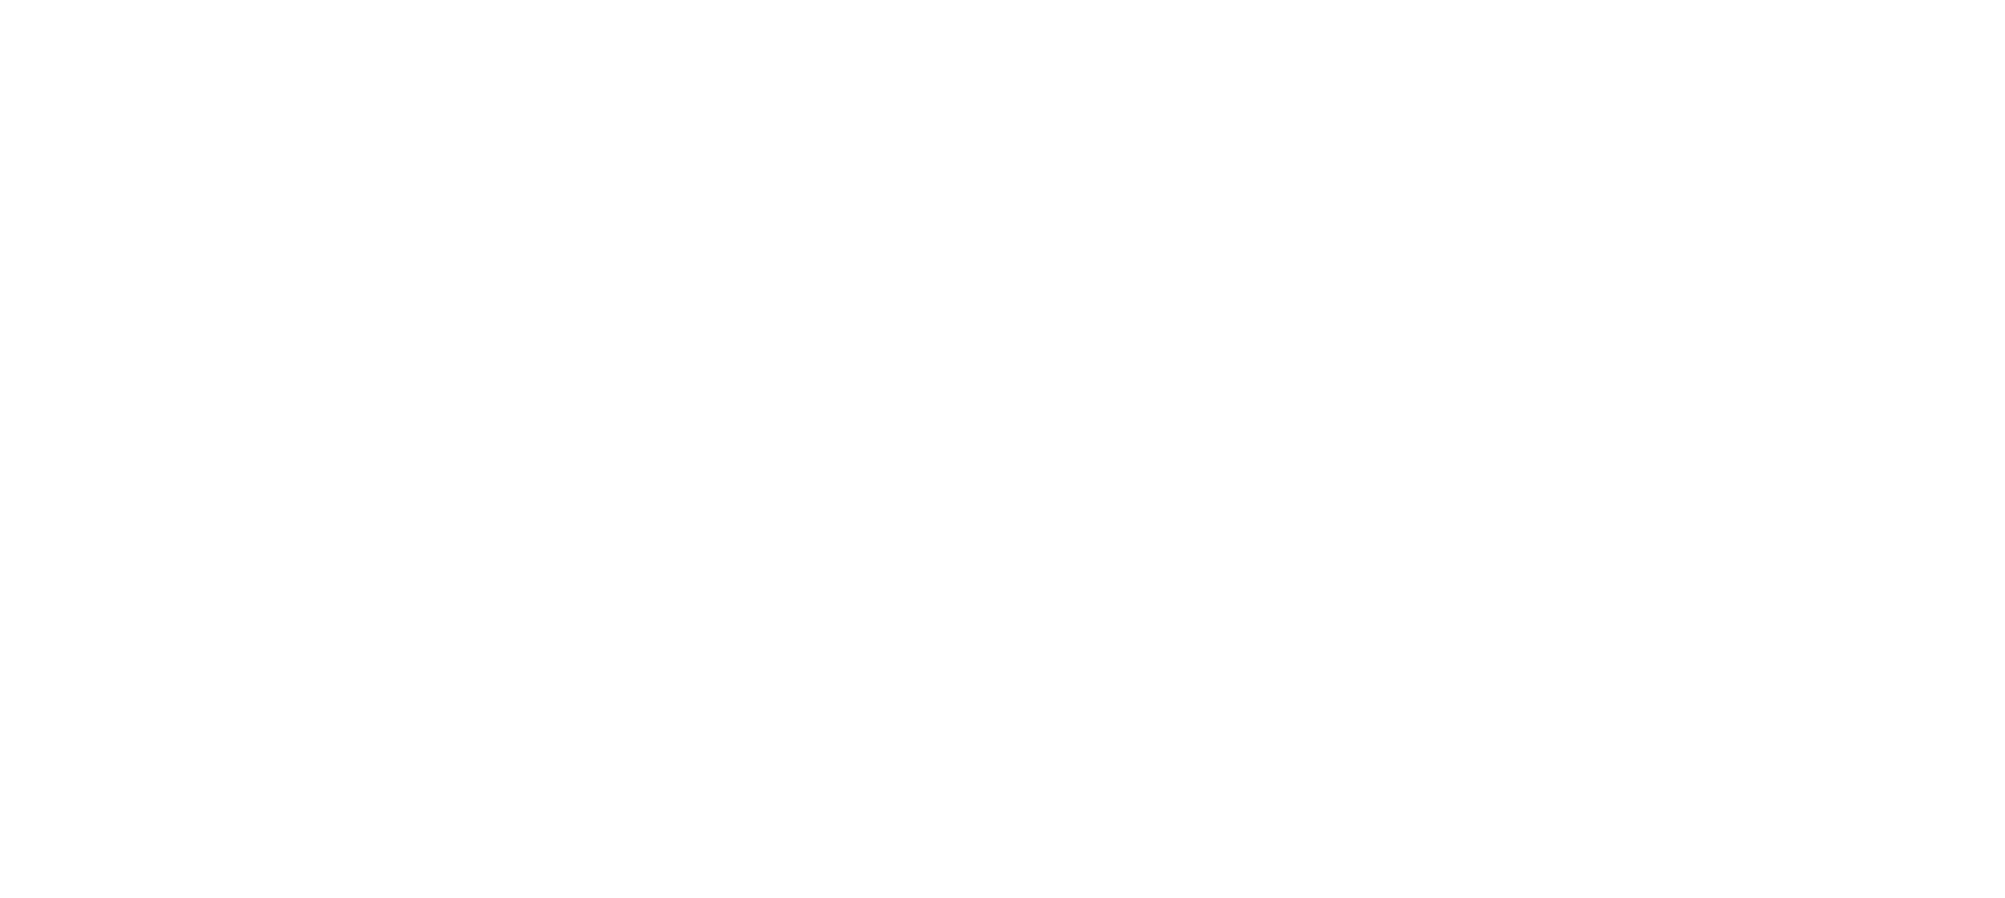 Specialists in Orthodontics VA